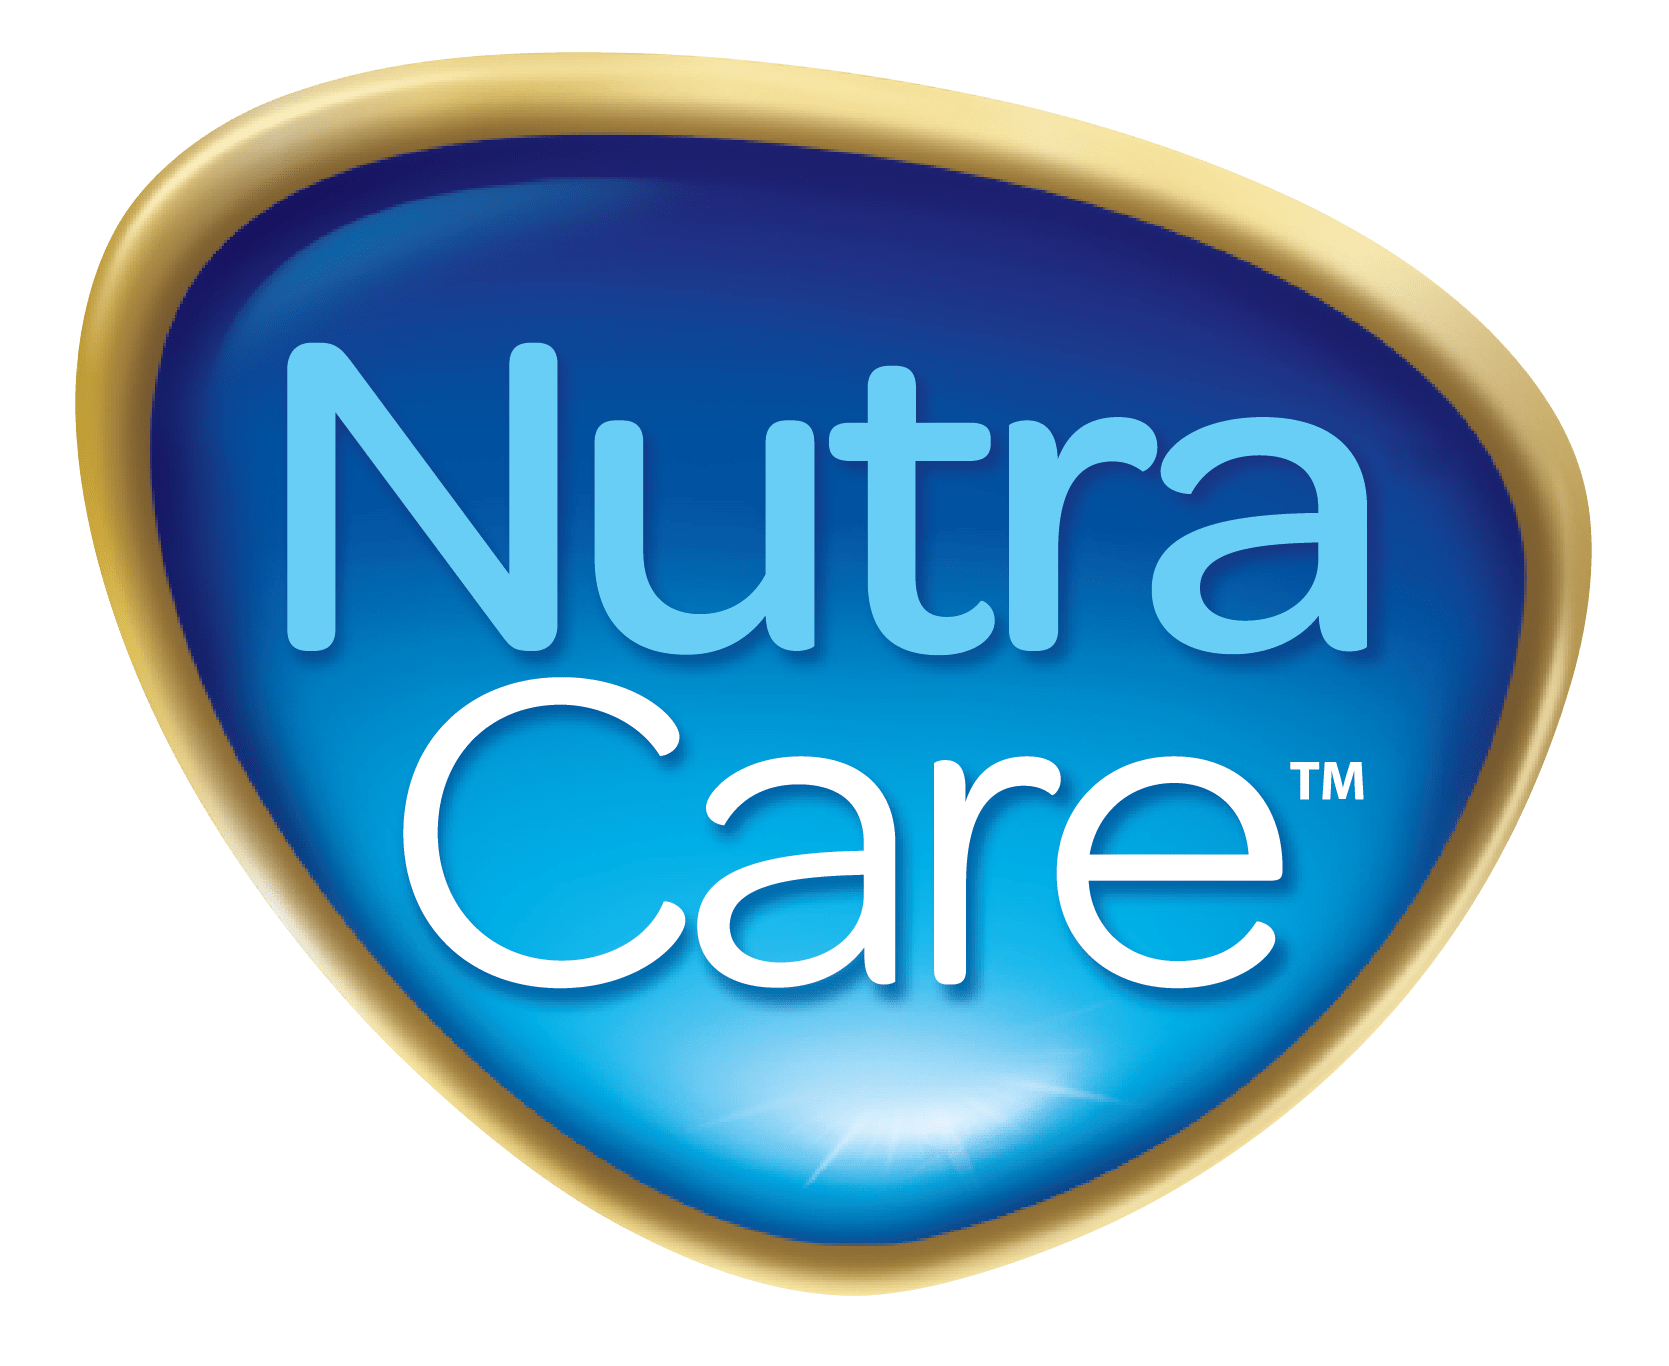 NutraCare Life